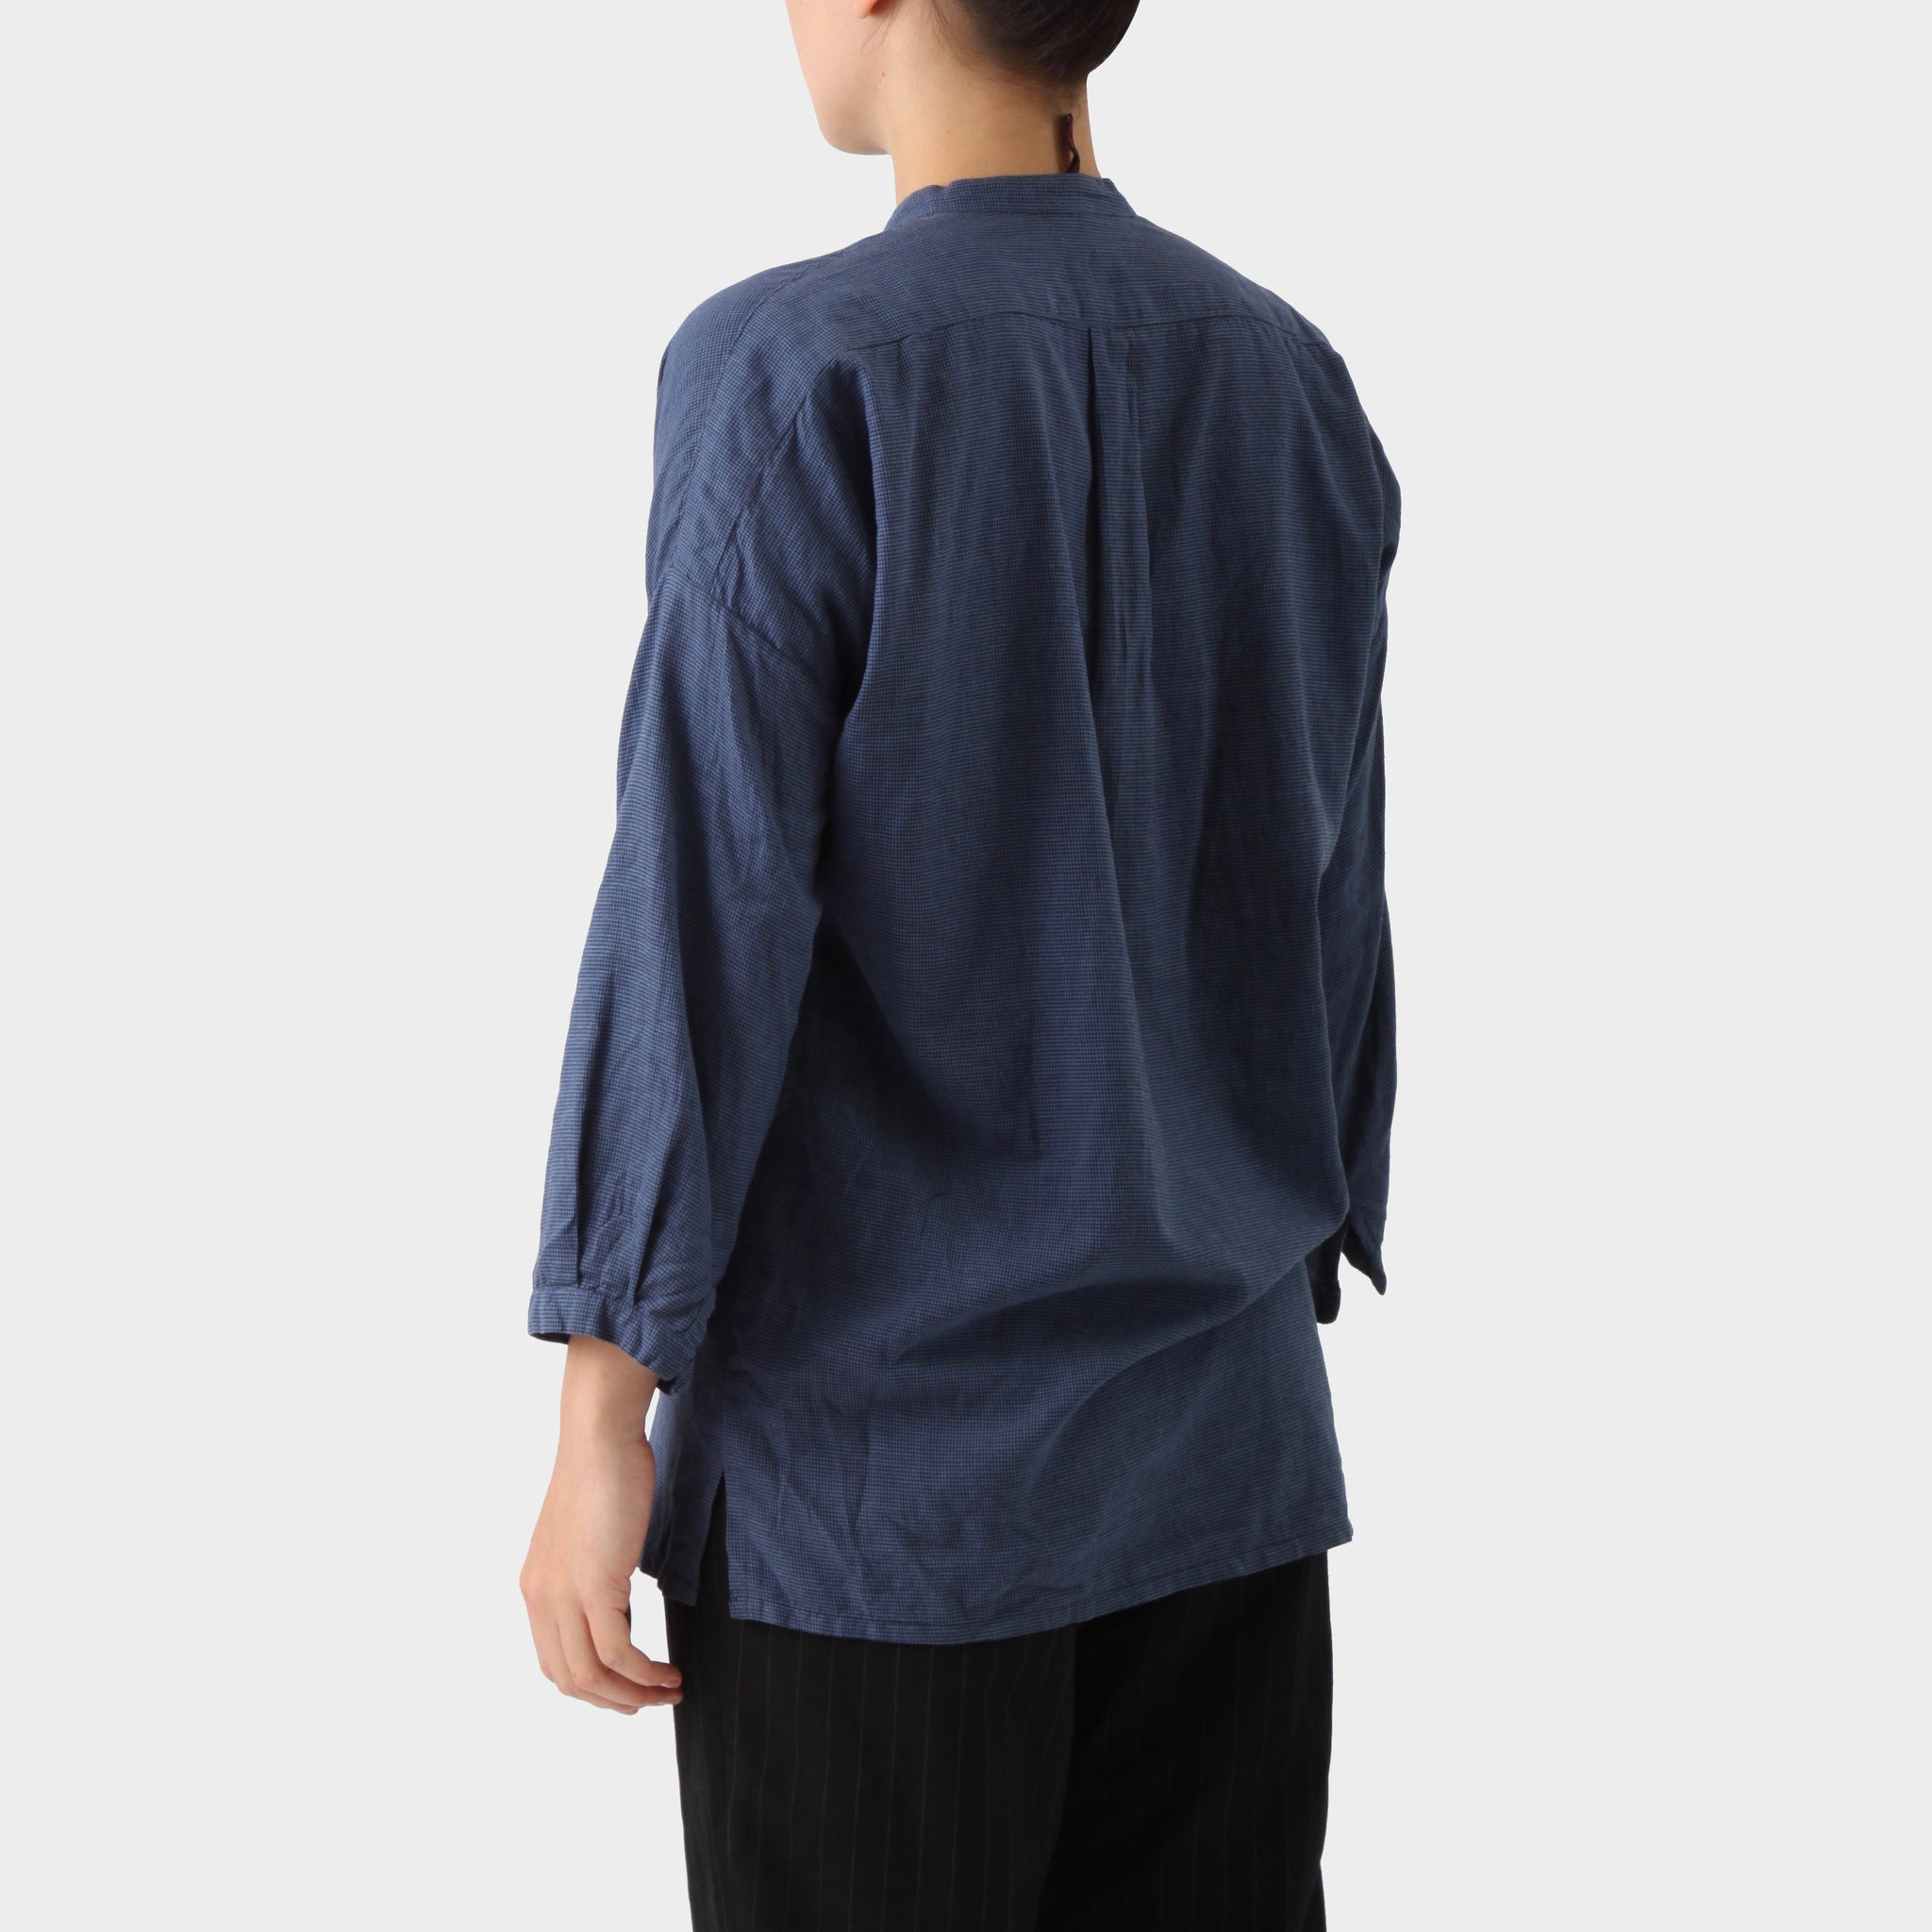 Daniela Gregis Navy Black Cotton Collarless Shirt